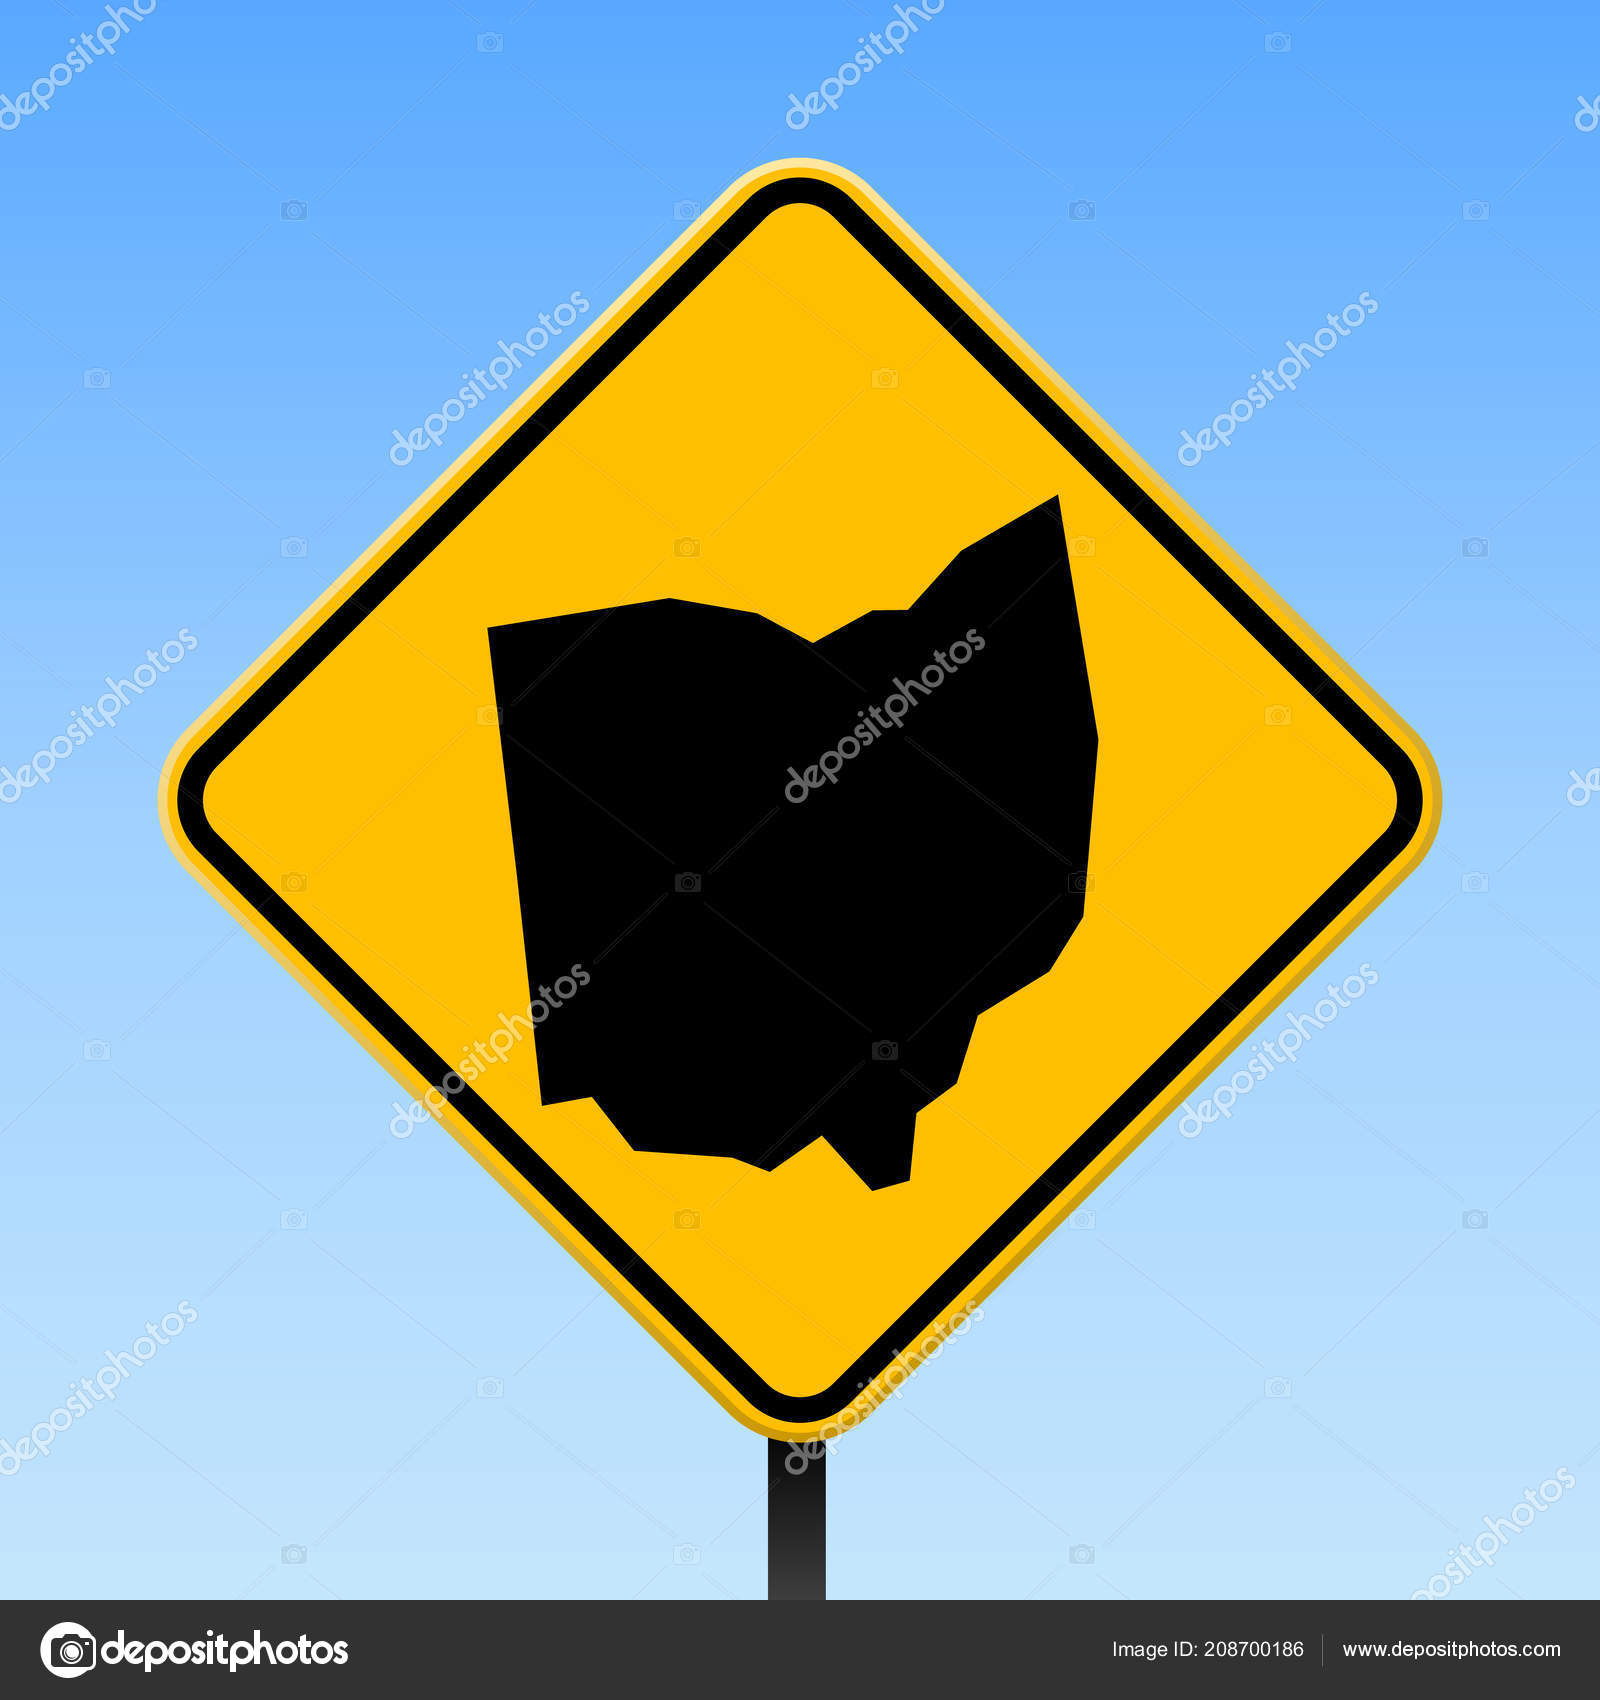 Ohio Map On Road Sign Square Poster With Ohio Us State Map On Yellow